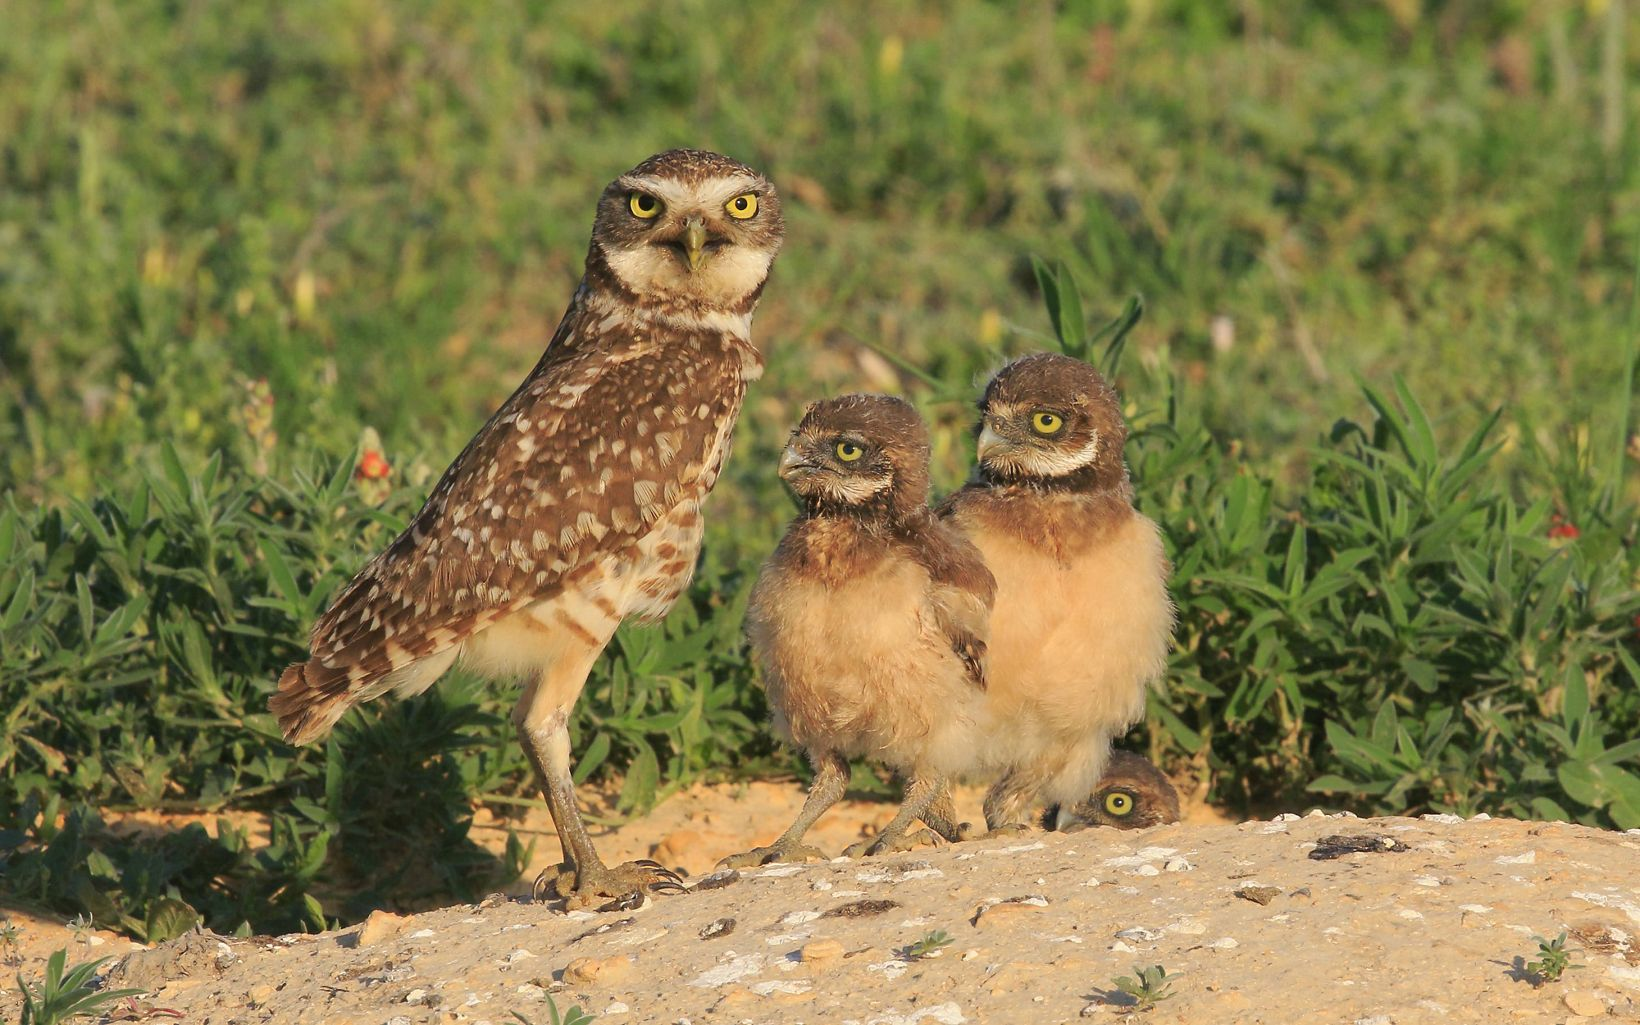 Adult brown speckled owl stands at burrow with three chicks.